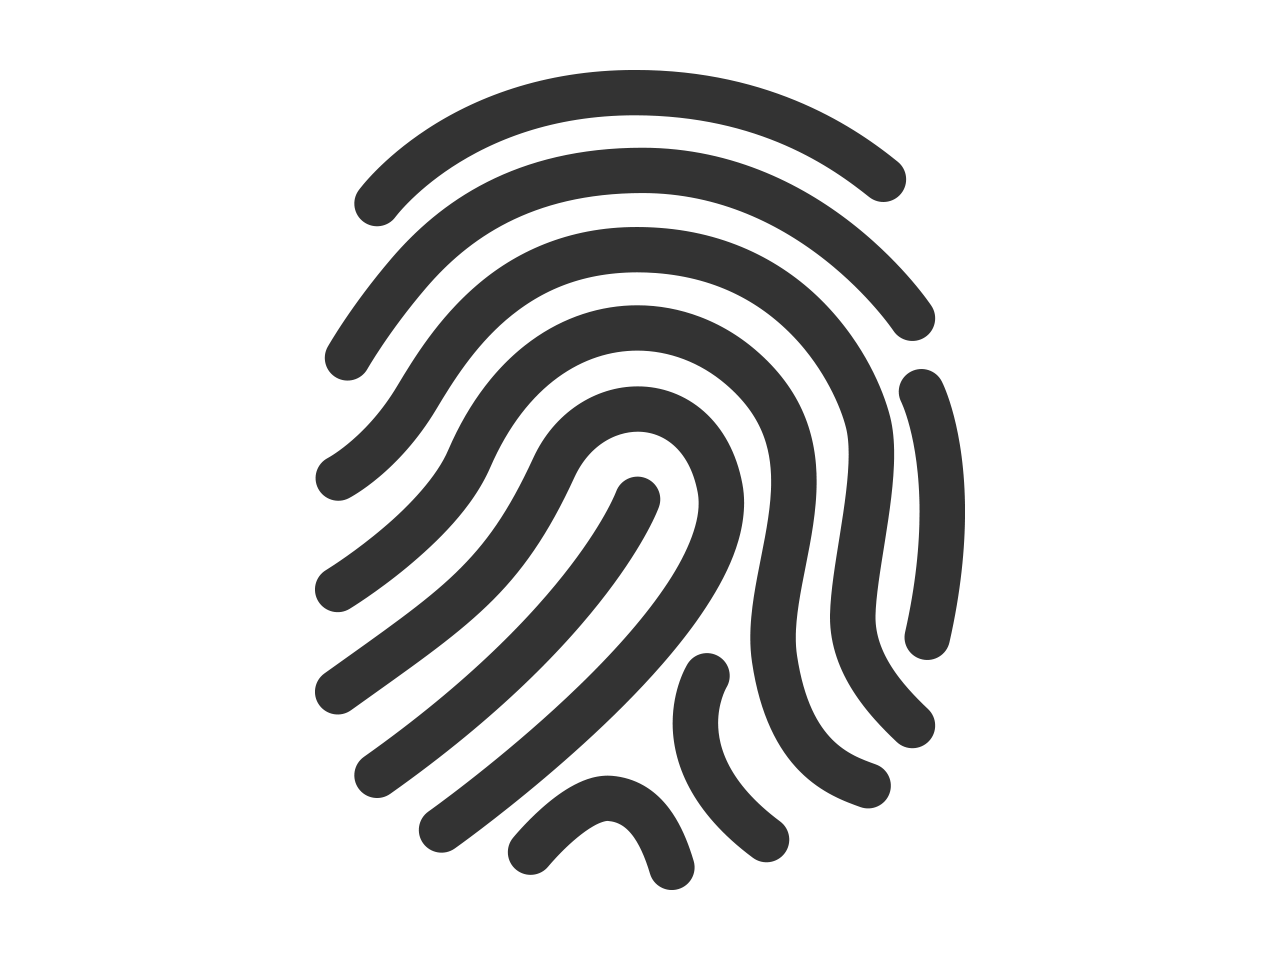 Finger print png fashion. Firefly clipart thumbprint